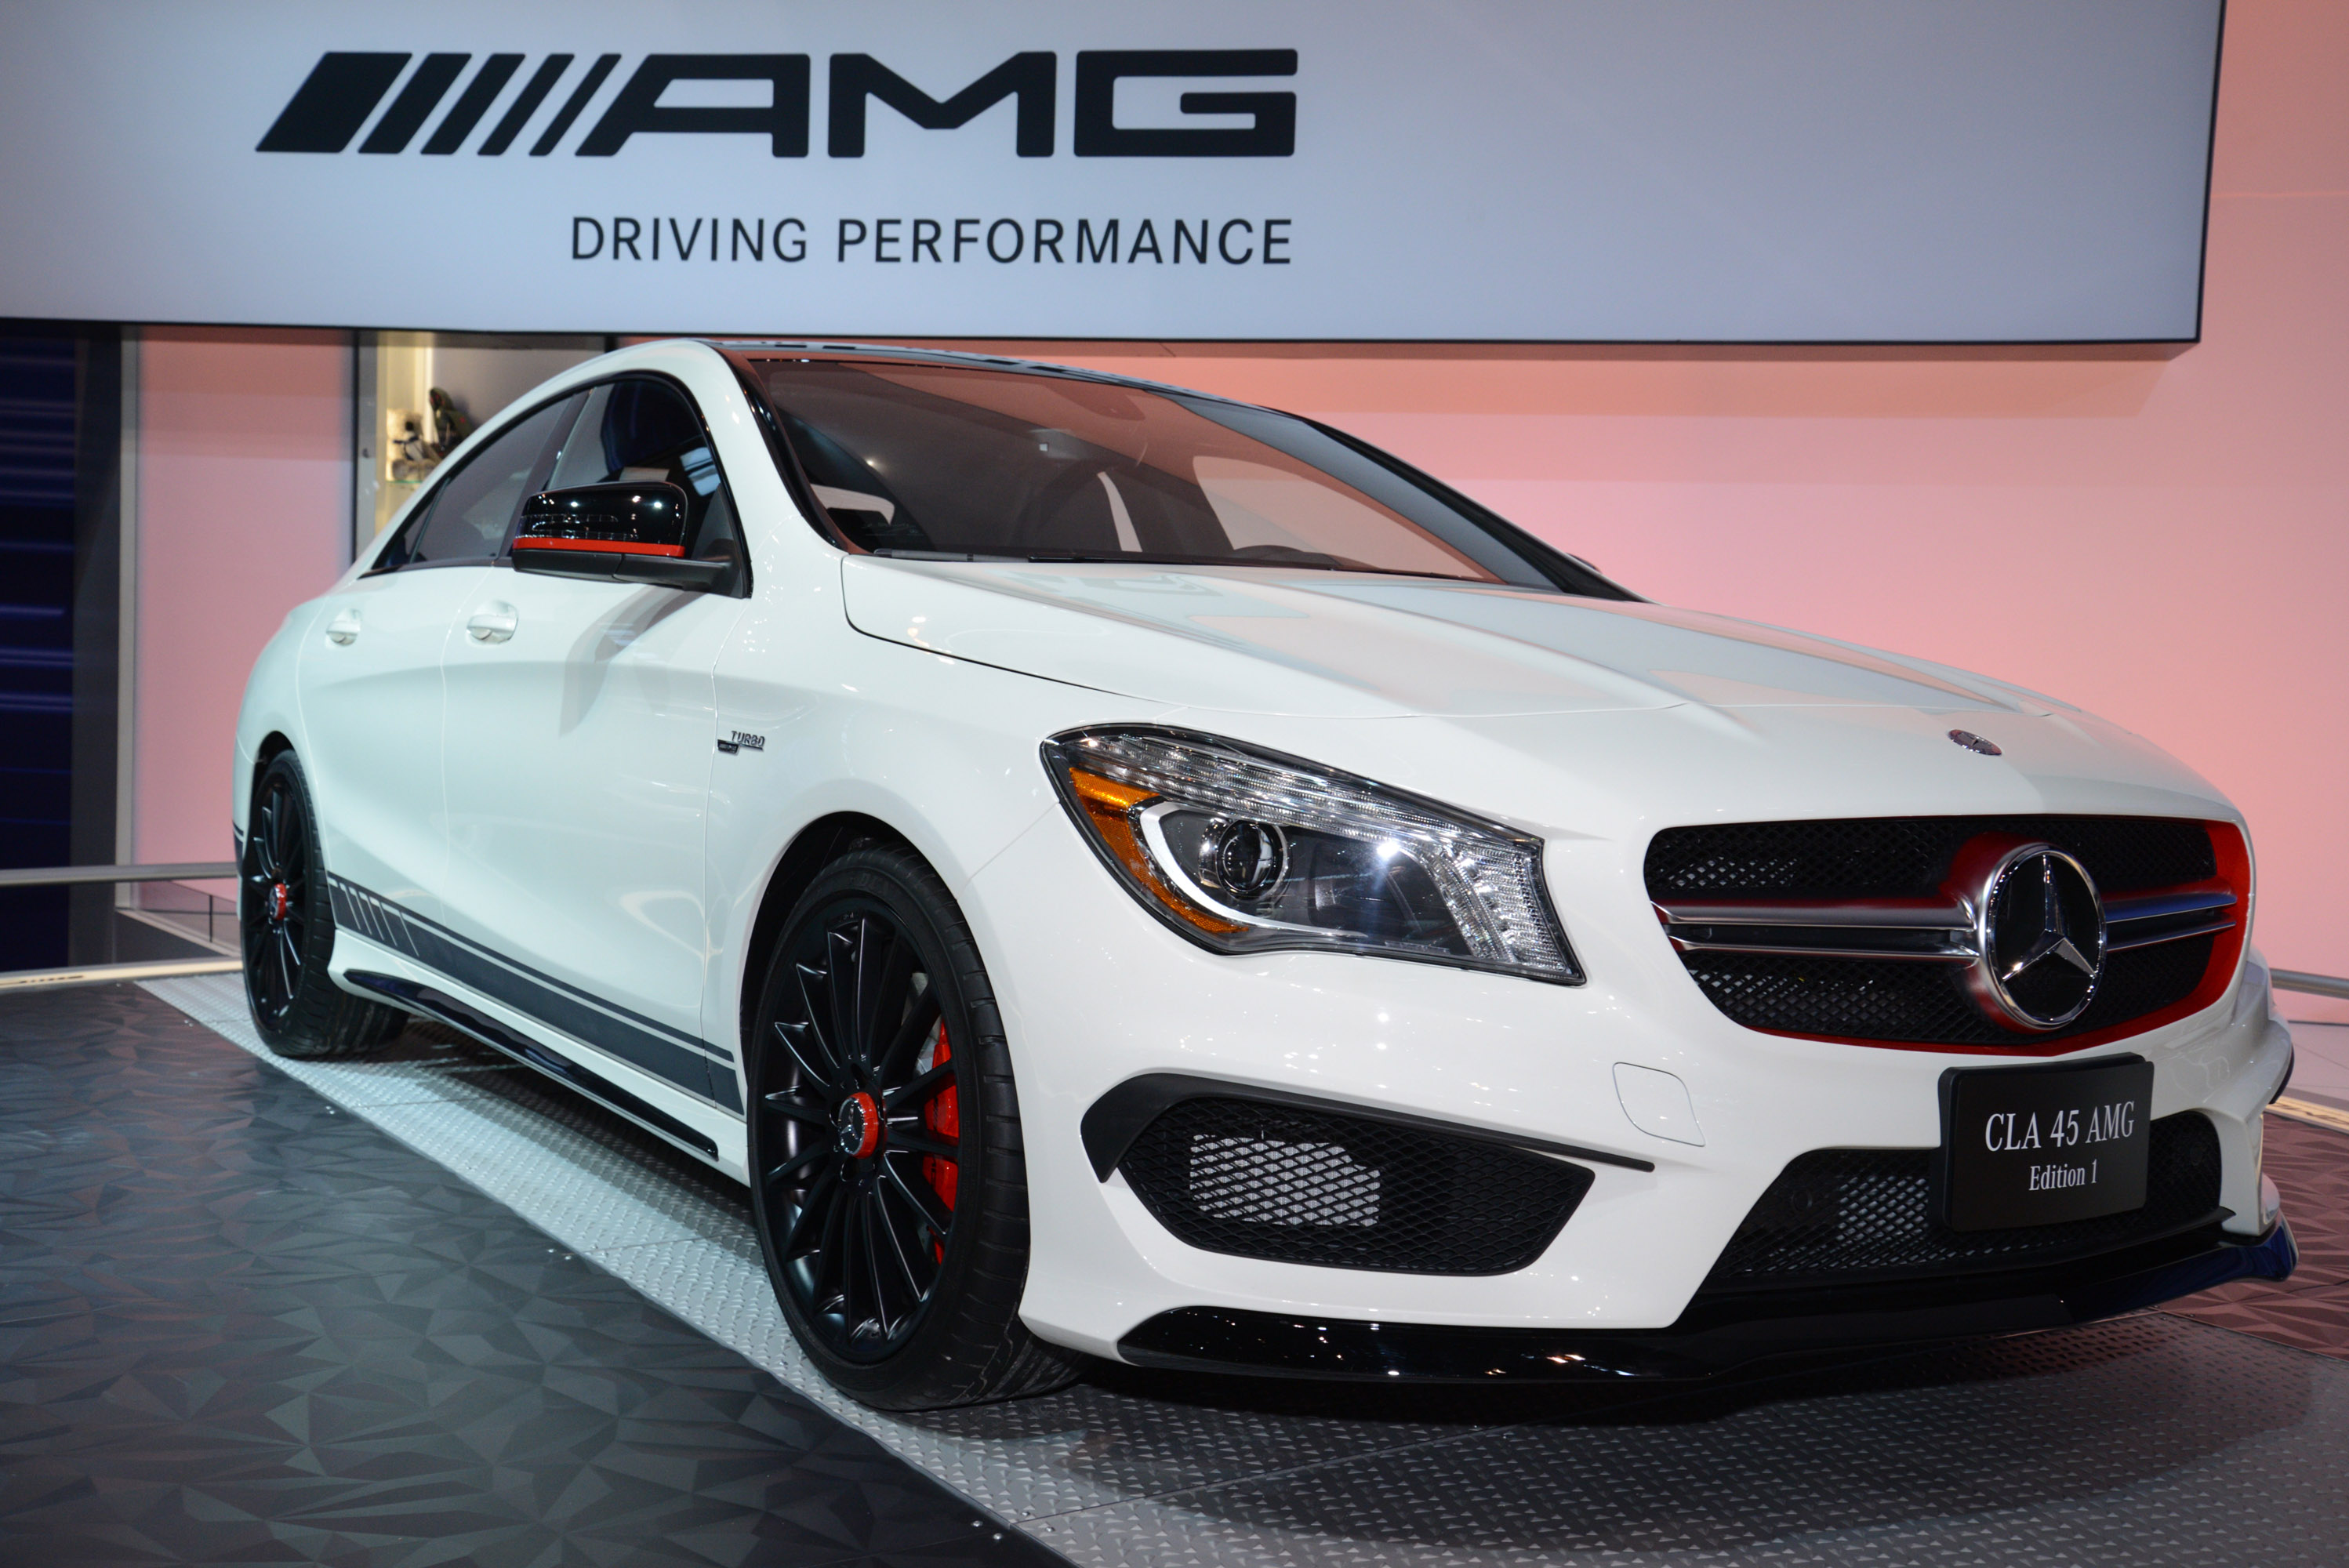 Mercedes Cla 45 Amg Review | Release Date, Price and Specs